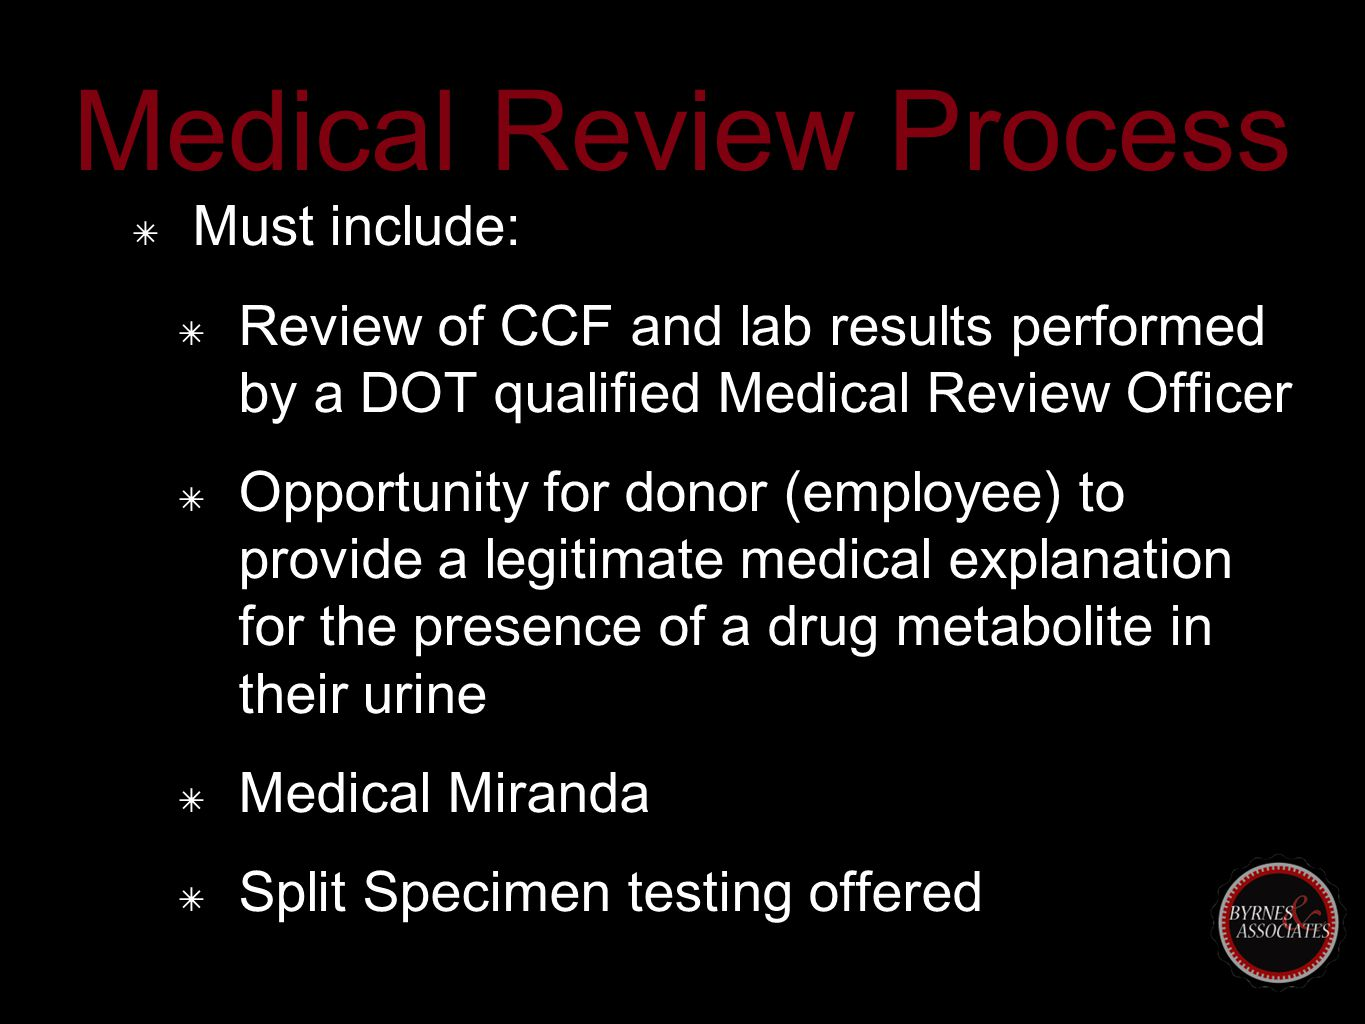 Medical Review Process ✴ Must include: ✴ Review of CCF and lab results performed by a DOT qualified Medical Review Officer ✴ Opportunity for donor (employee) to provide a legitimate medical explanation for the presence of a drug metabolite in their urine ✴ Medical Miranda ✴ Split Specimen testing offered